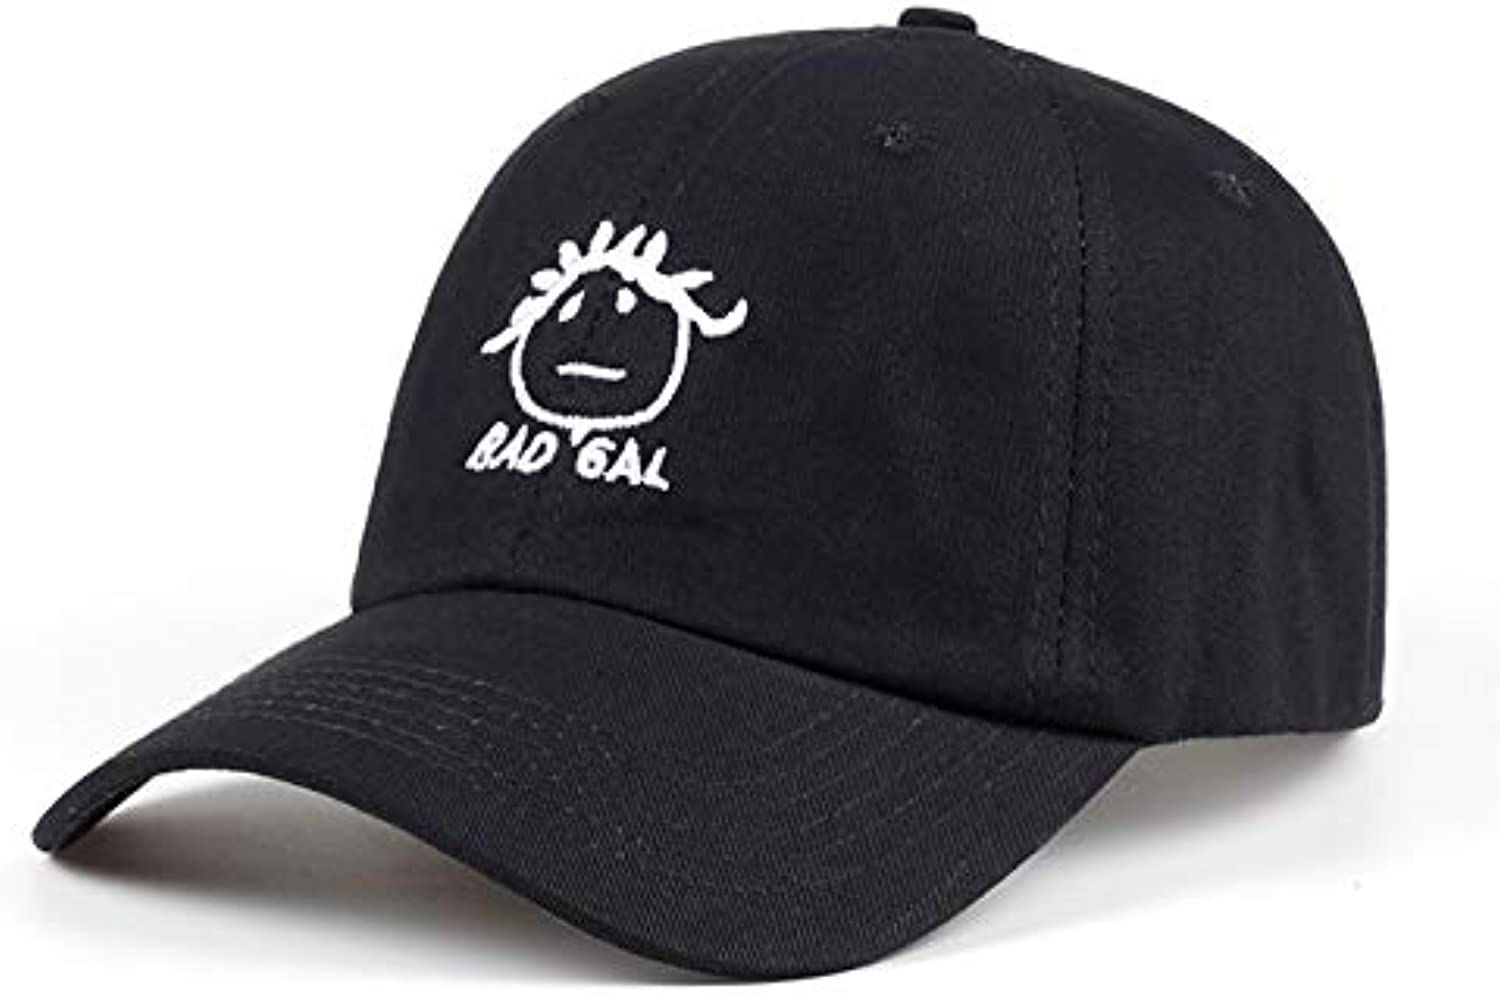 Chlally Fashion Baseball Caps Black Snapback Caps Men Hats for Men Women Summer Hip hop Cap Hats